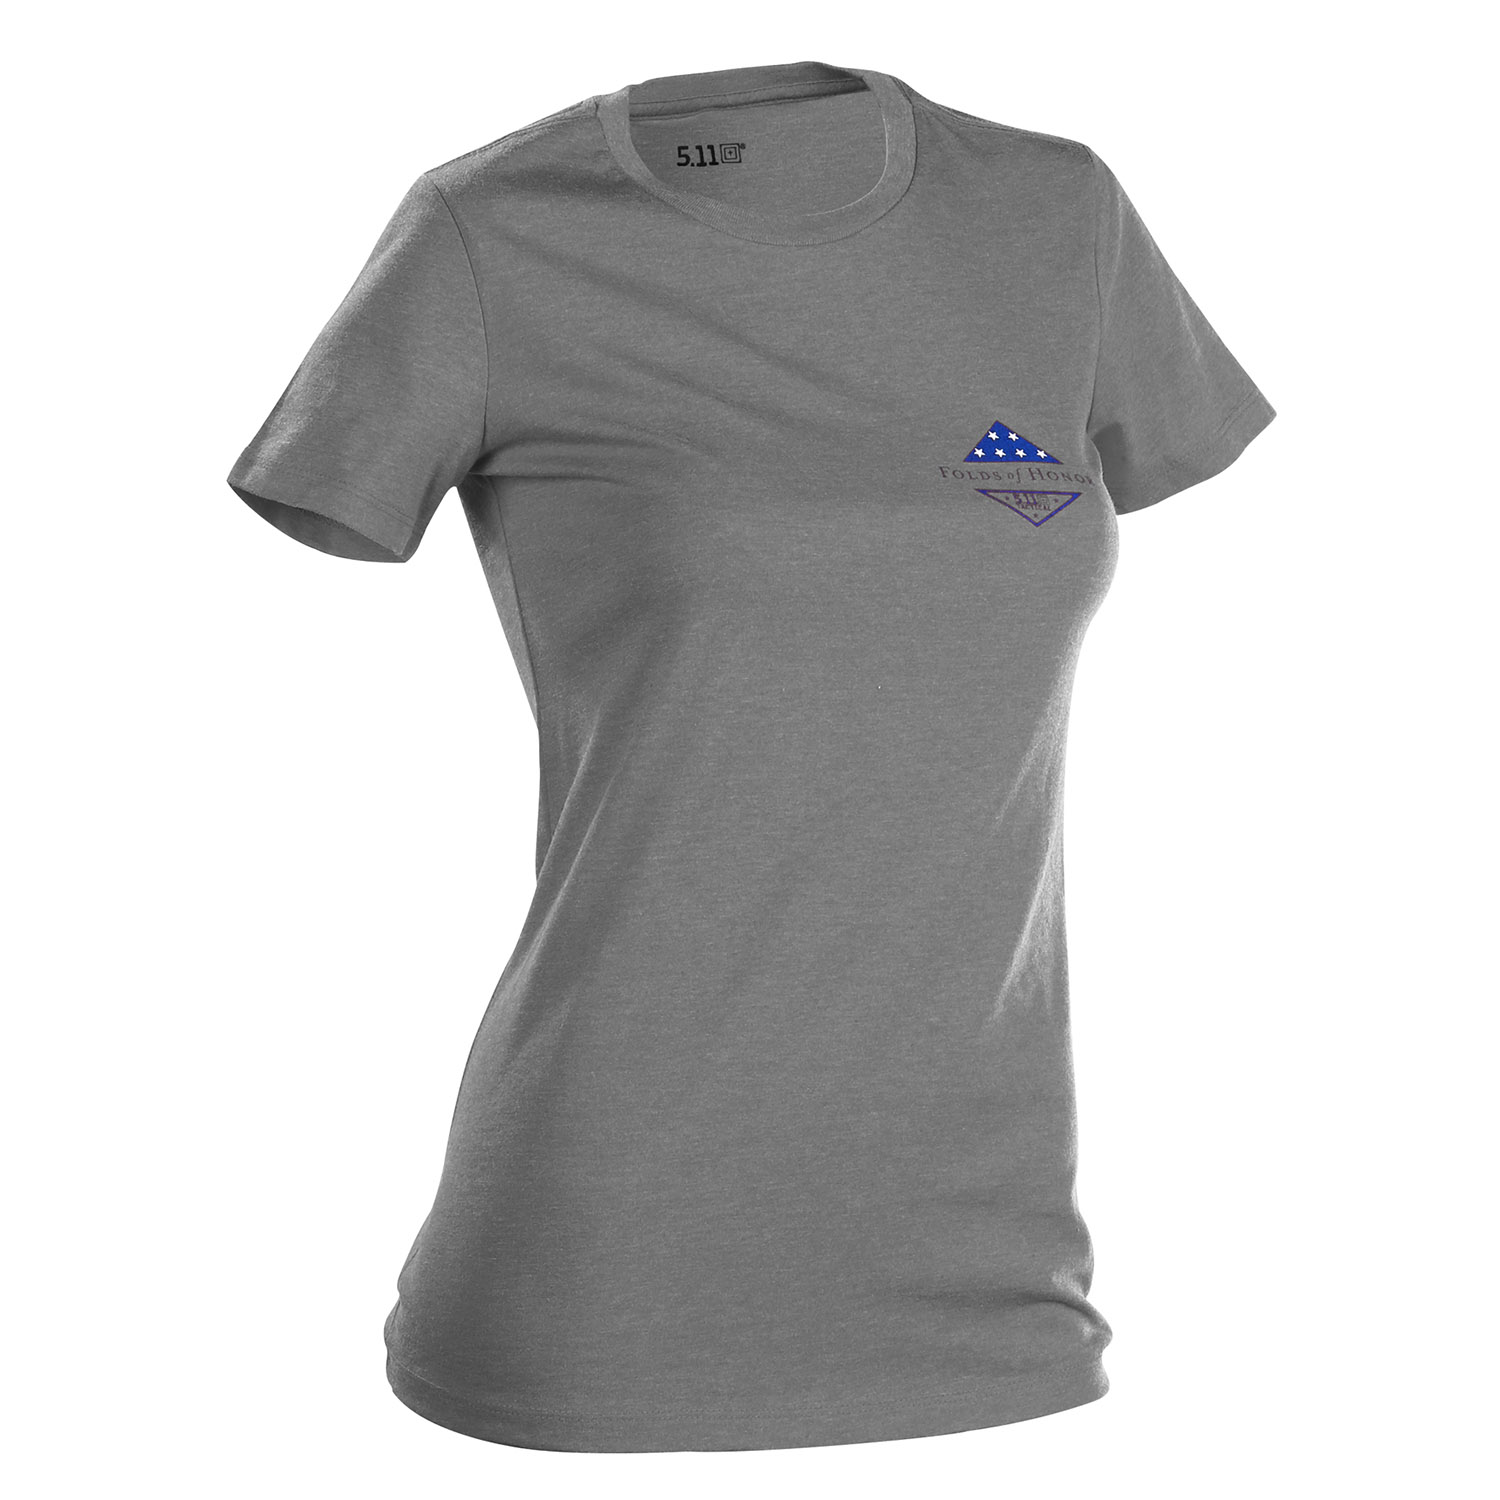 5.11 Tactical Women's FOH 'Stand With Us' T-Shirt